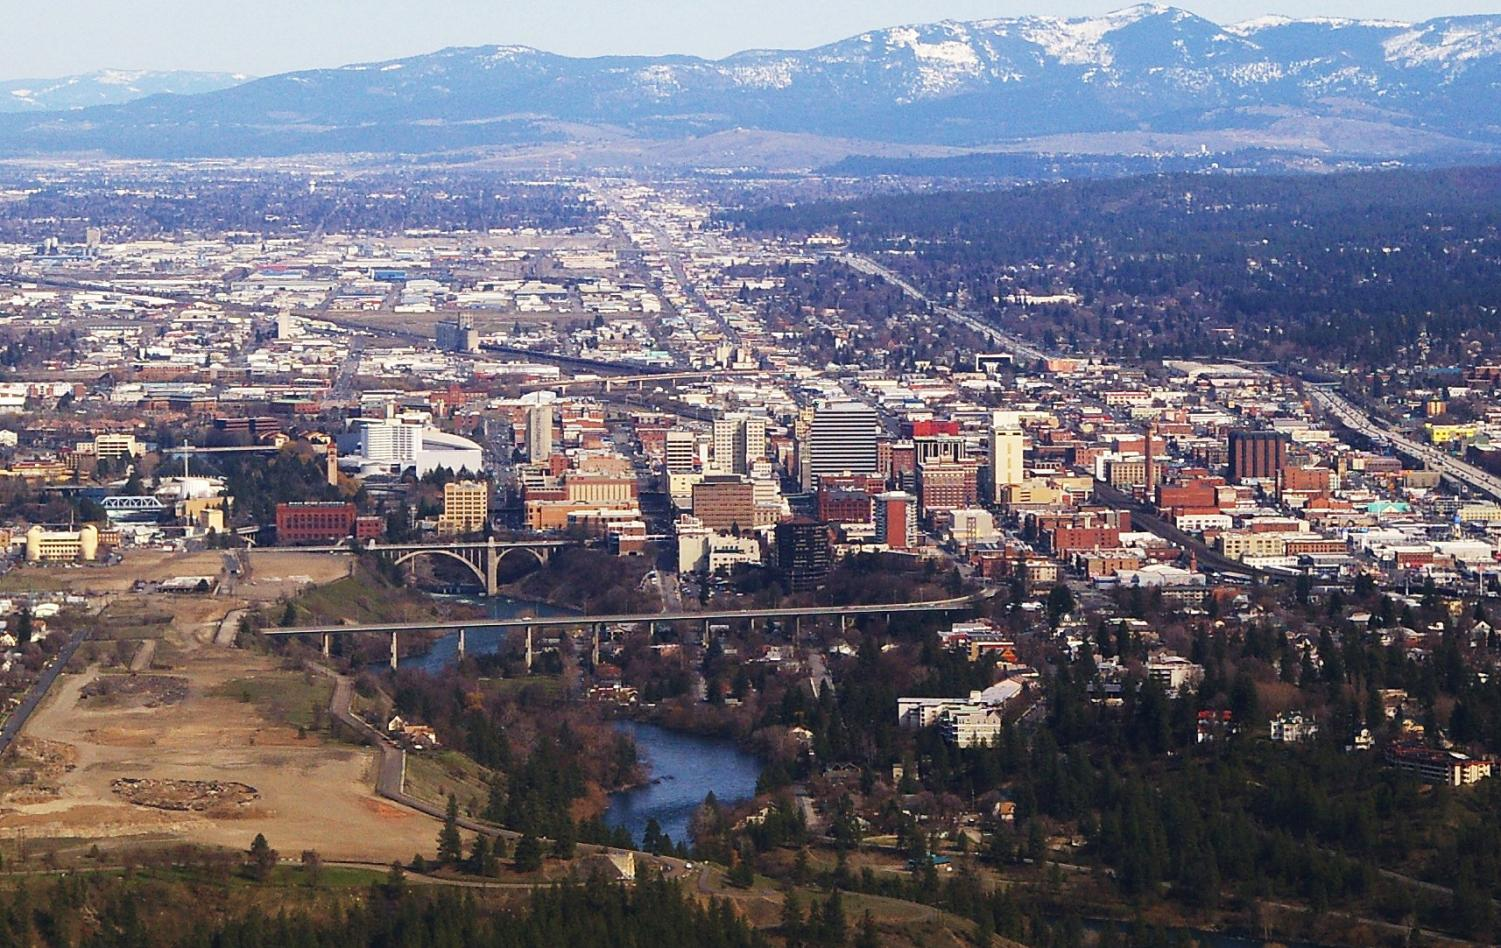 Spokane is the second-largest city in Washington, and it's only an hour-and-a-half from Pullman.